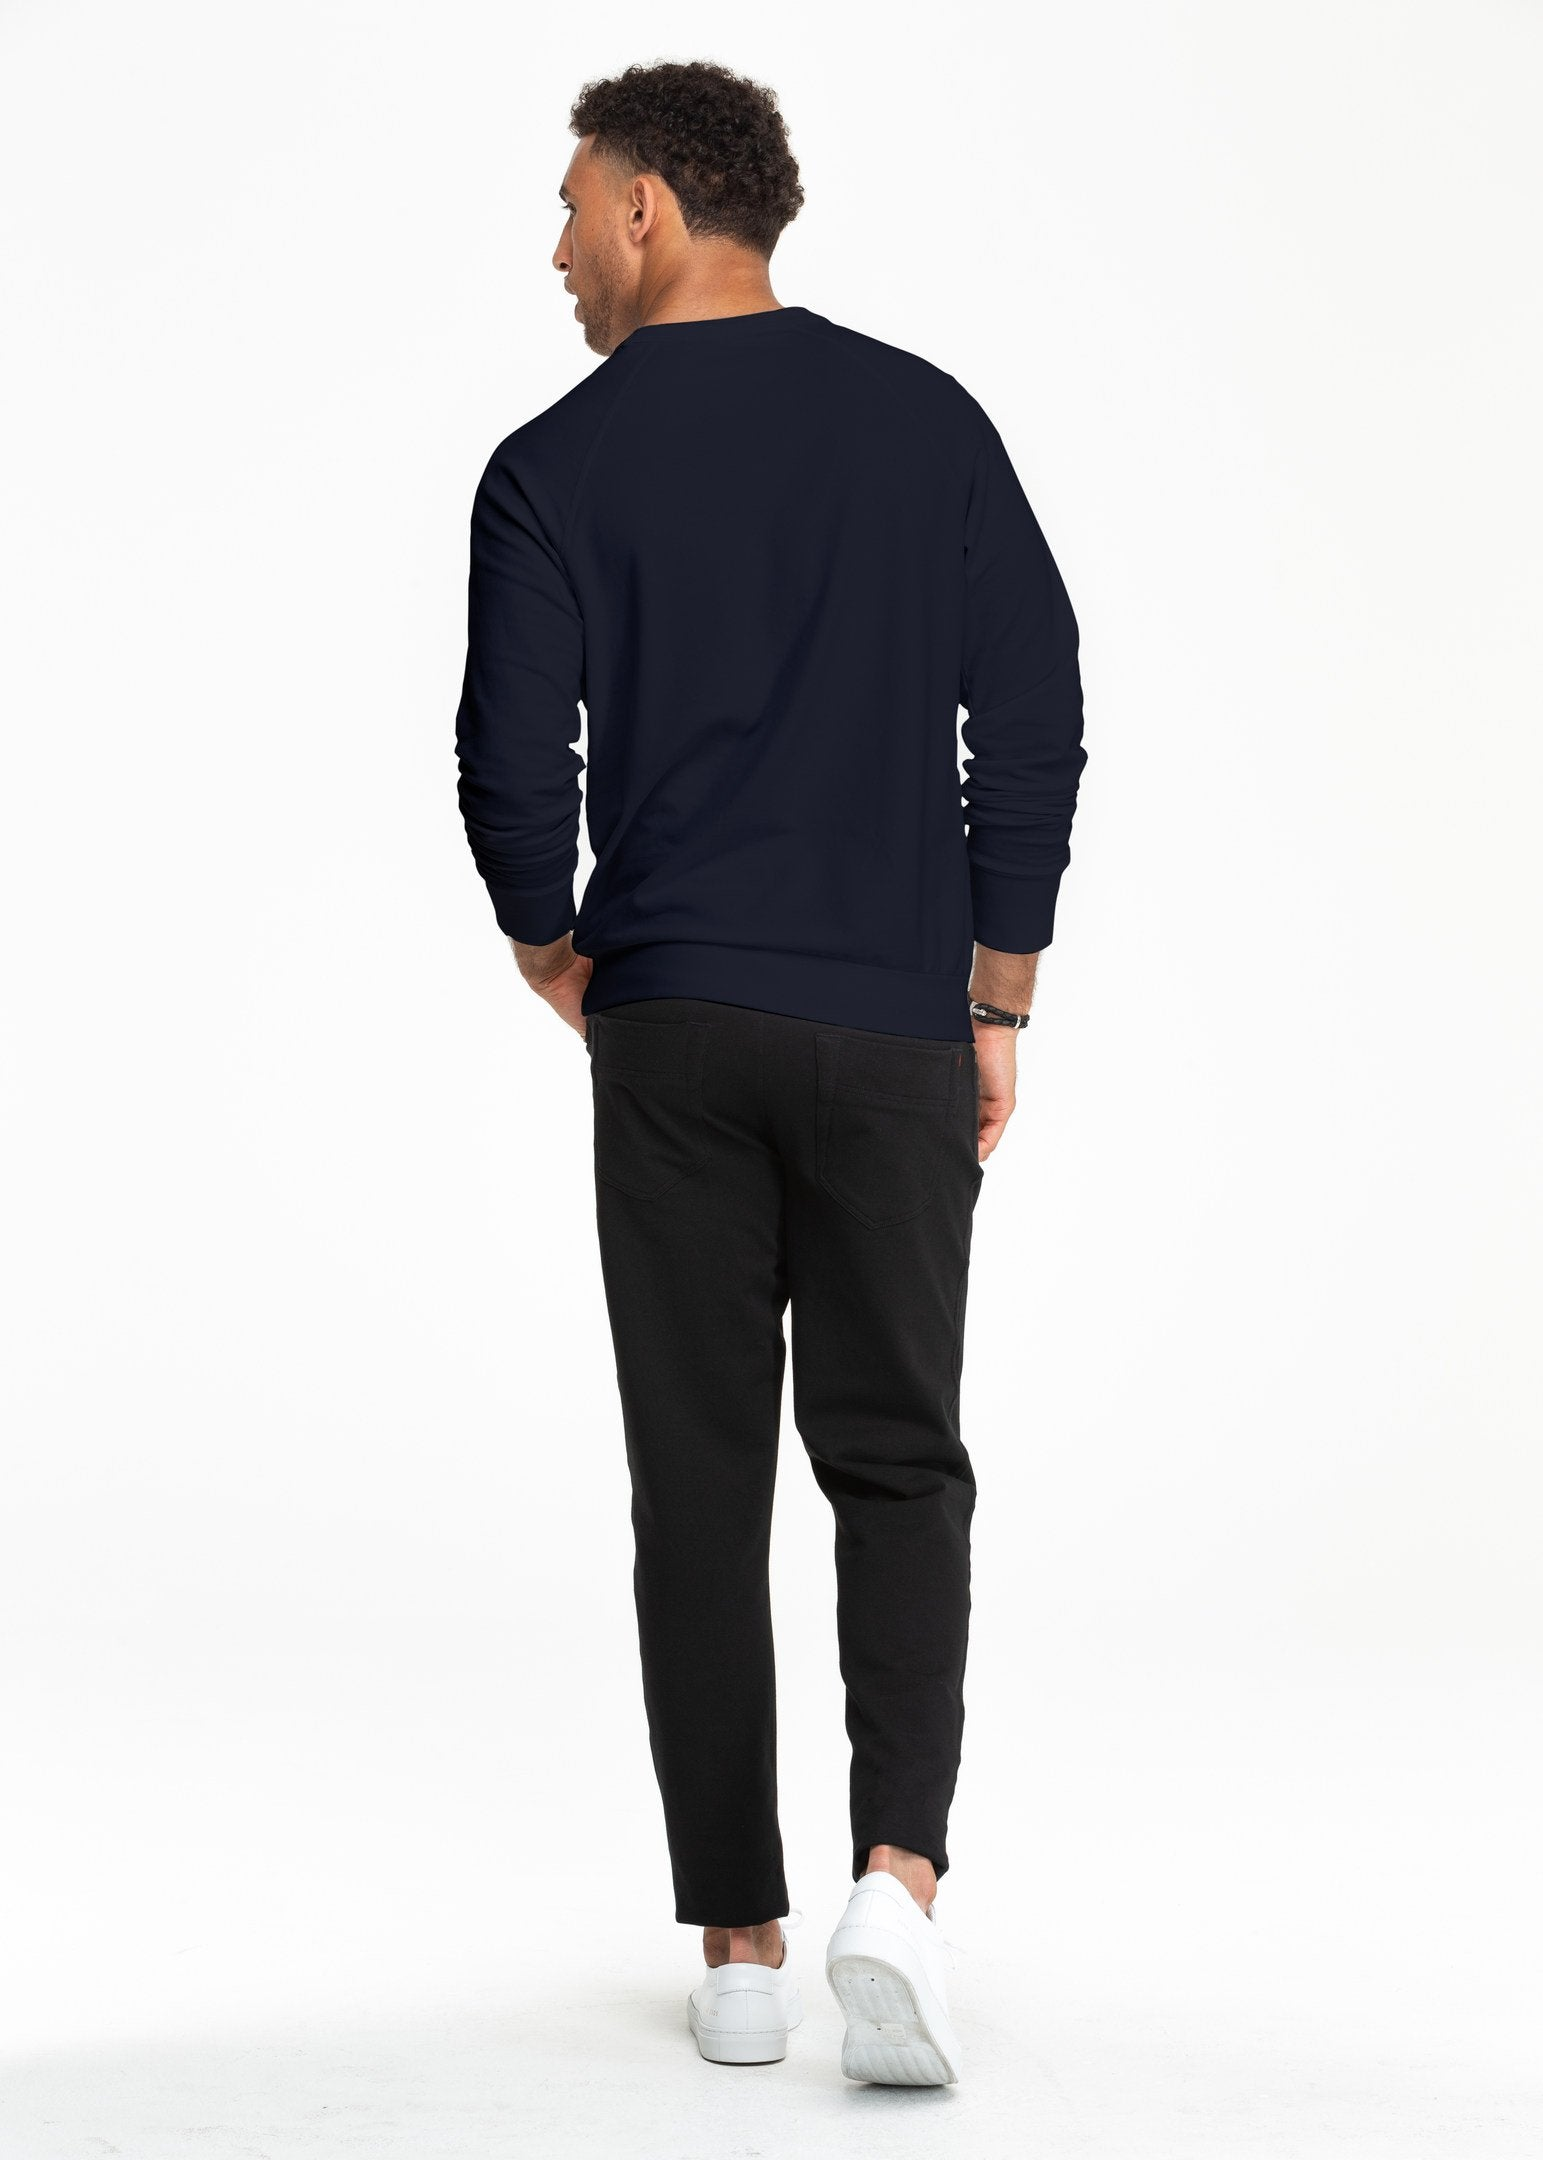 SWET-Shirt | Navy - Sweat Tailor